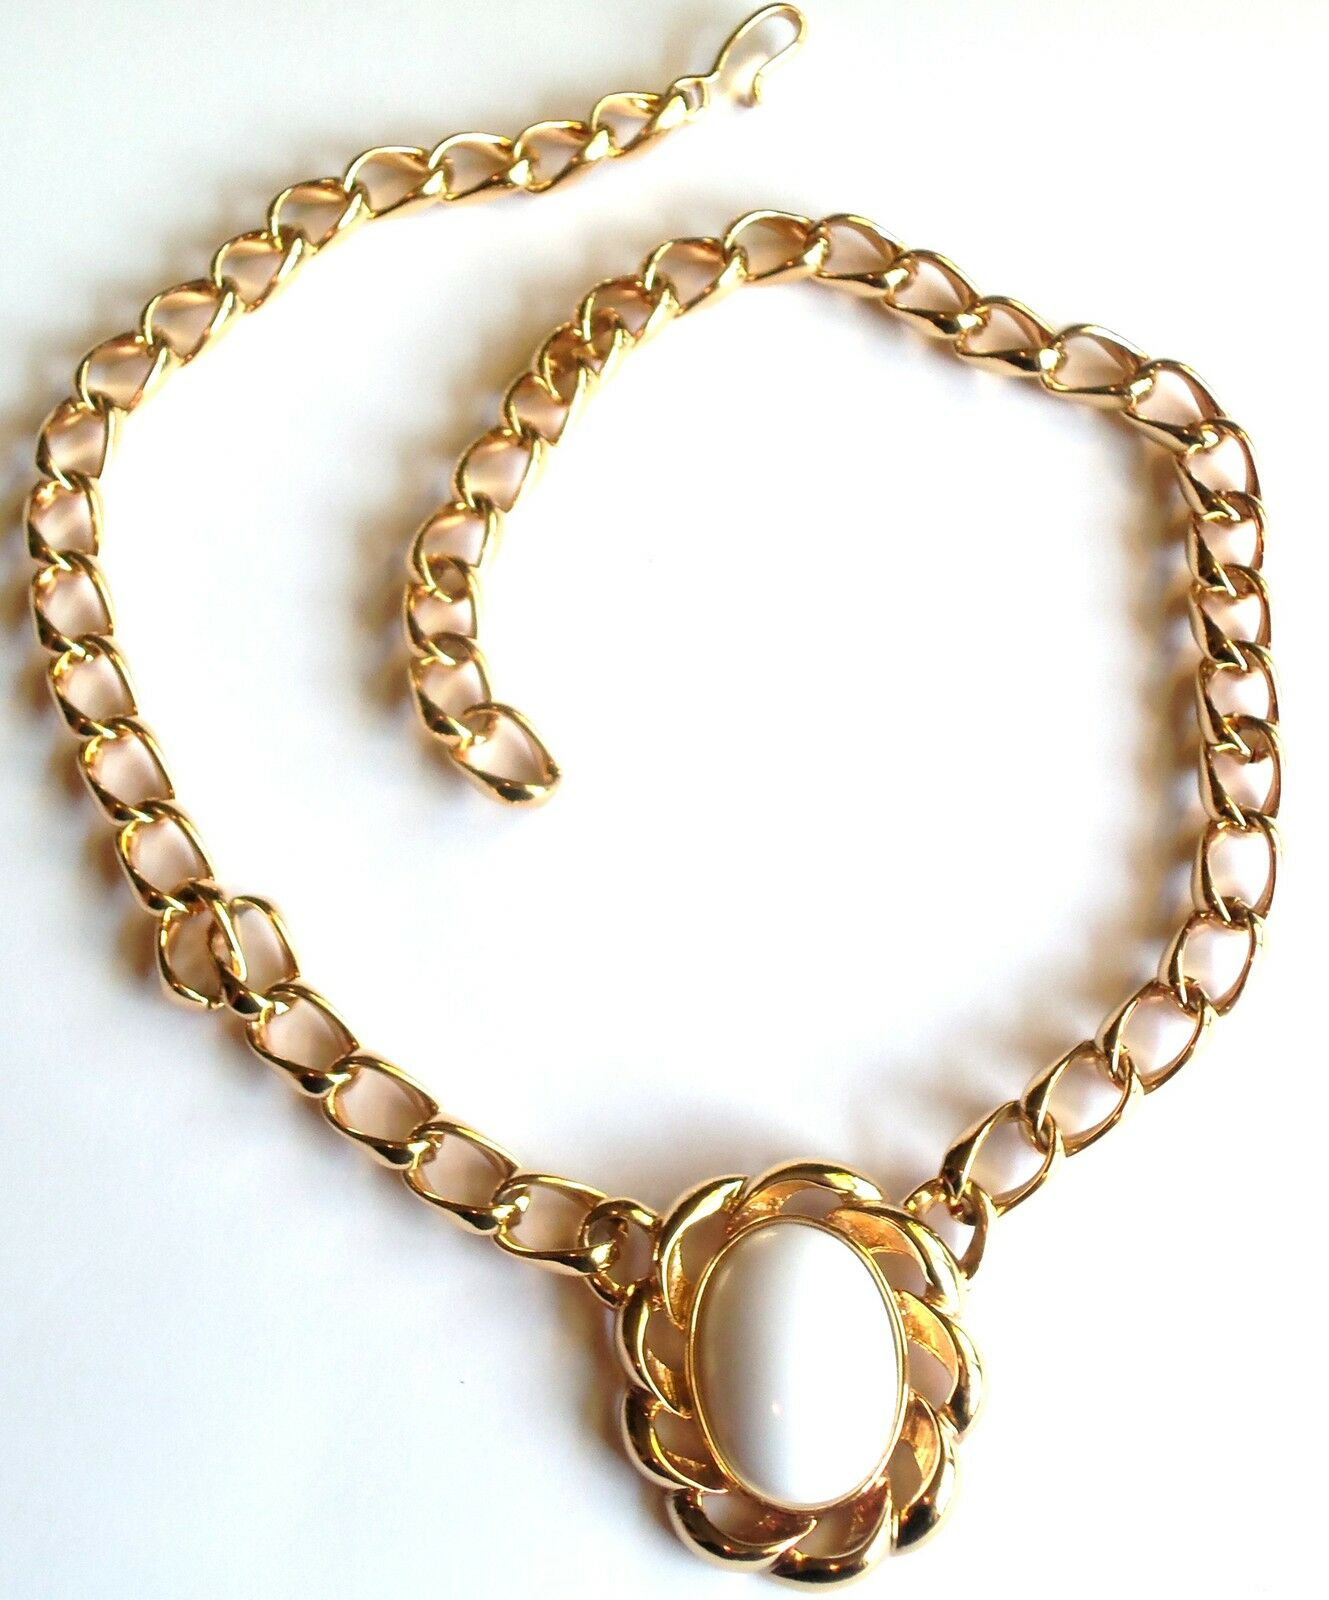 chic monet heavy gold plated chunky chain necklace white